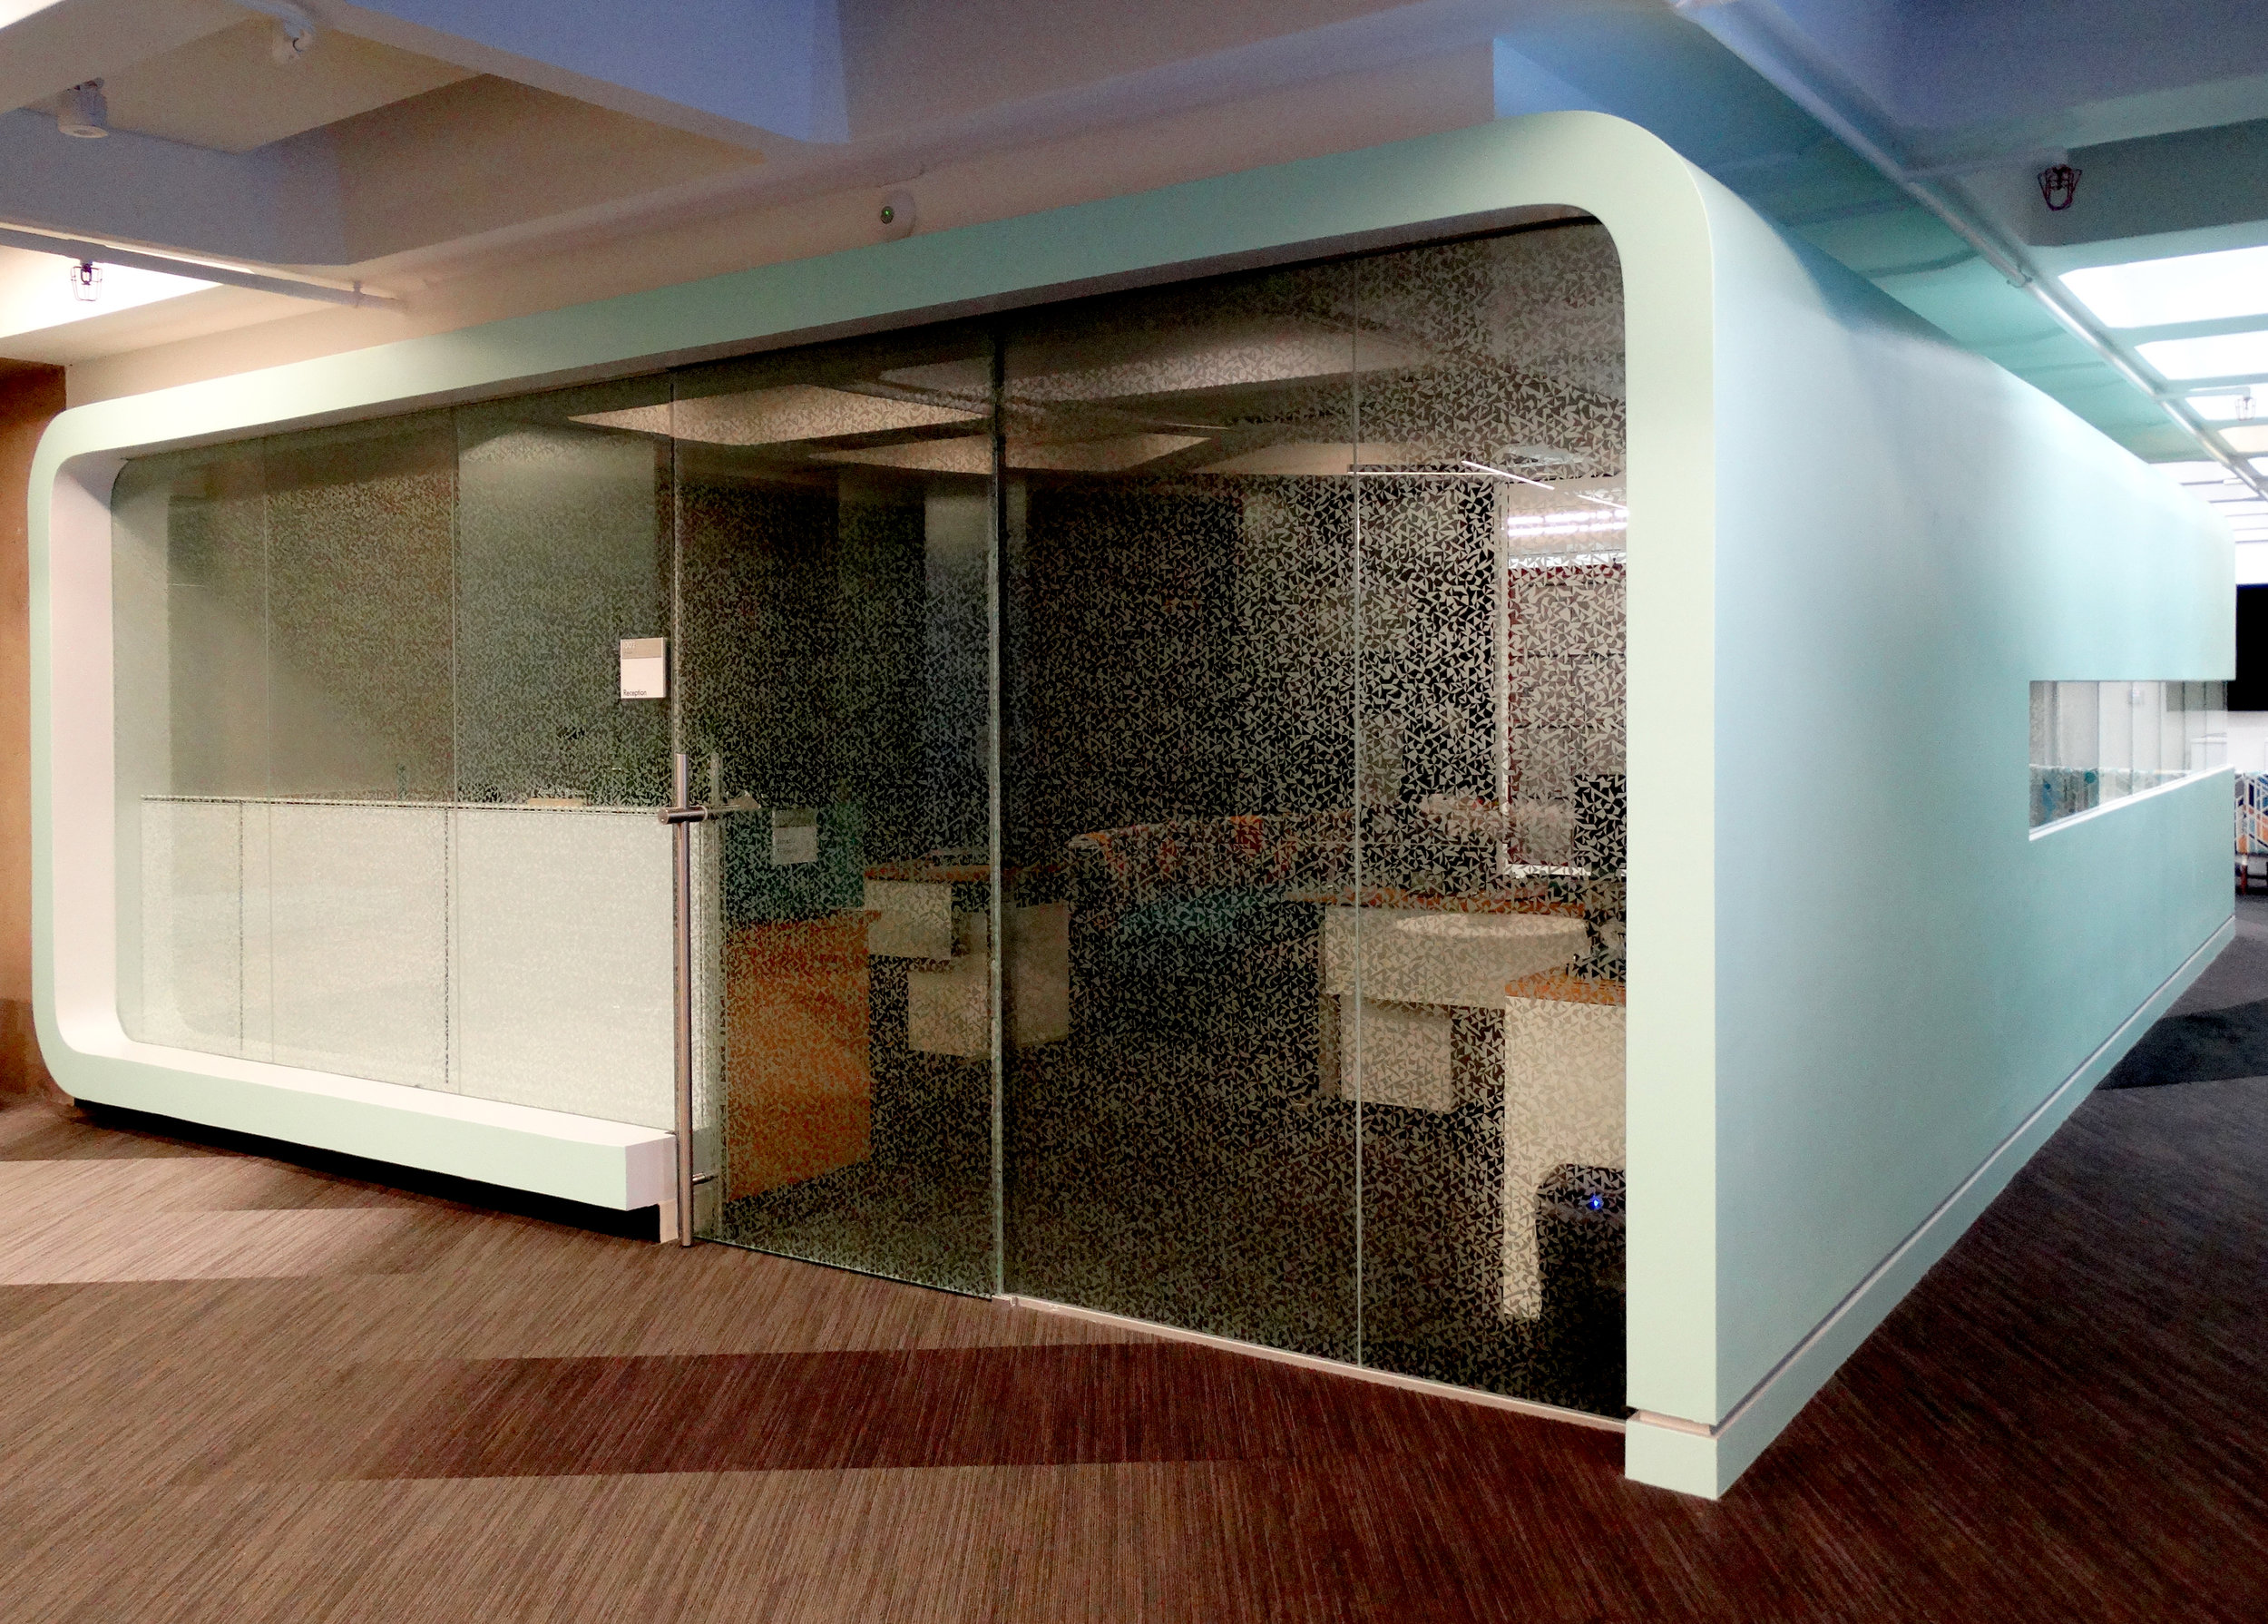 Illume Cool Drywall Glass Office Wall - Spaceworks AI.jpg